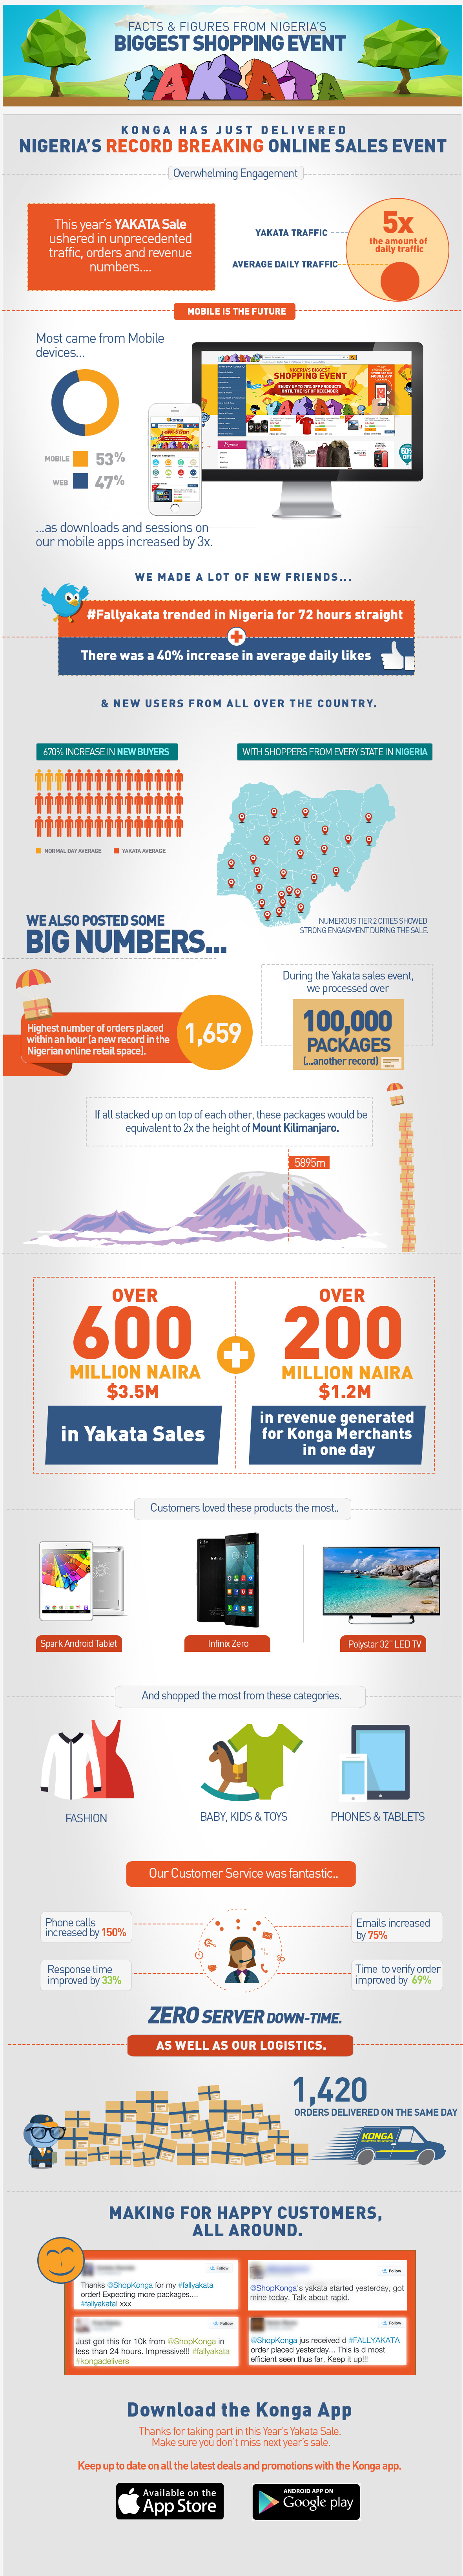 infographic for Yakata